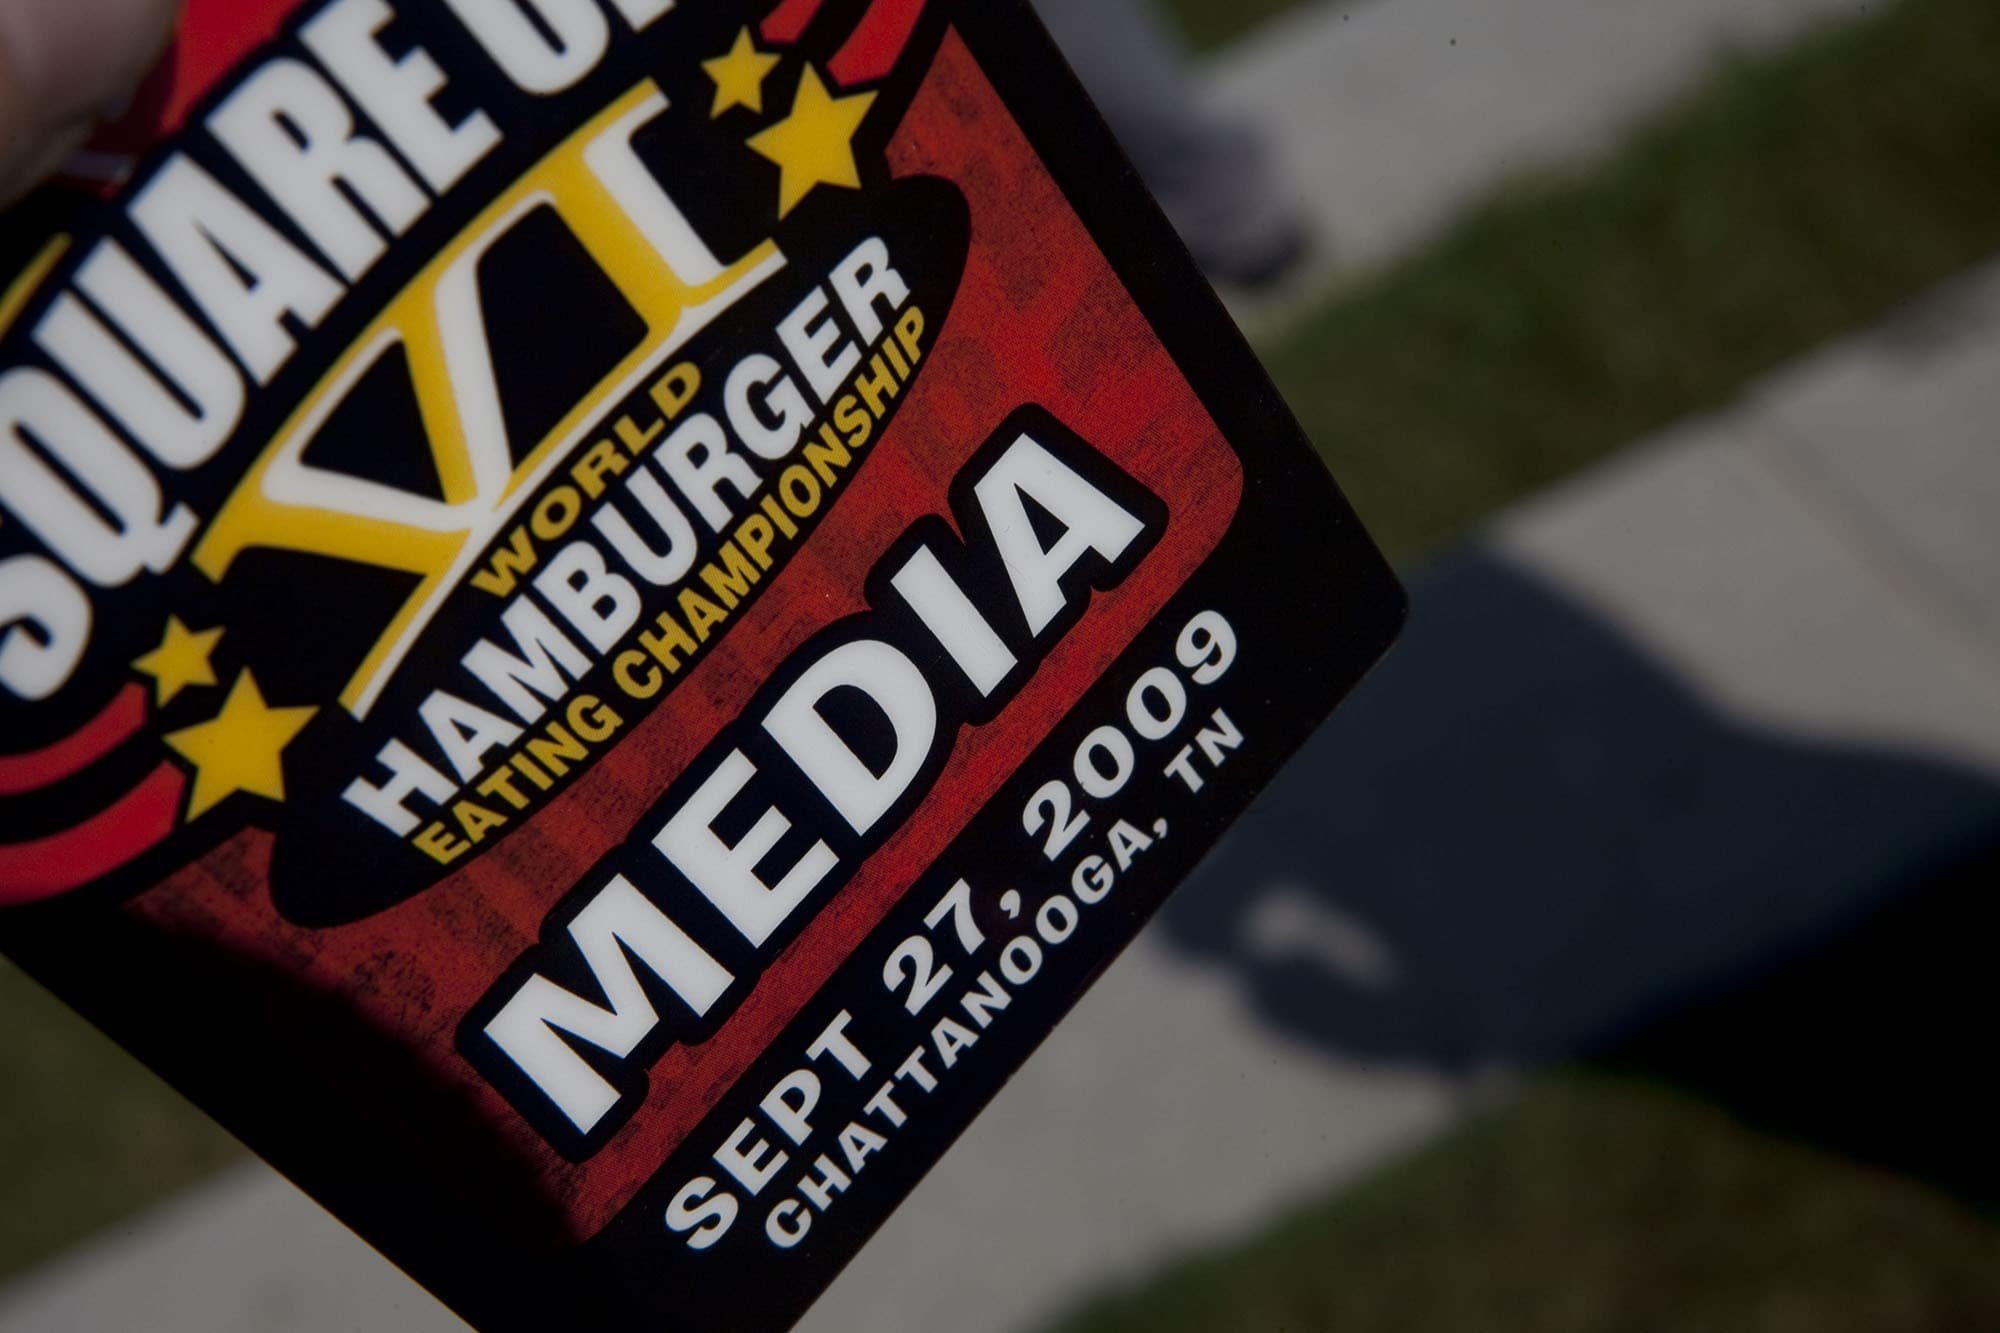 Media pass at the Krystal Square Off VI Hamburger eating Contest in Chattanooga, Tennessee.